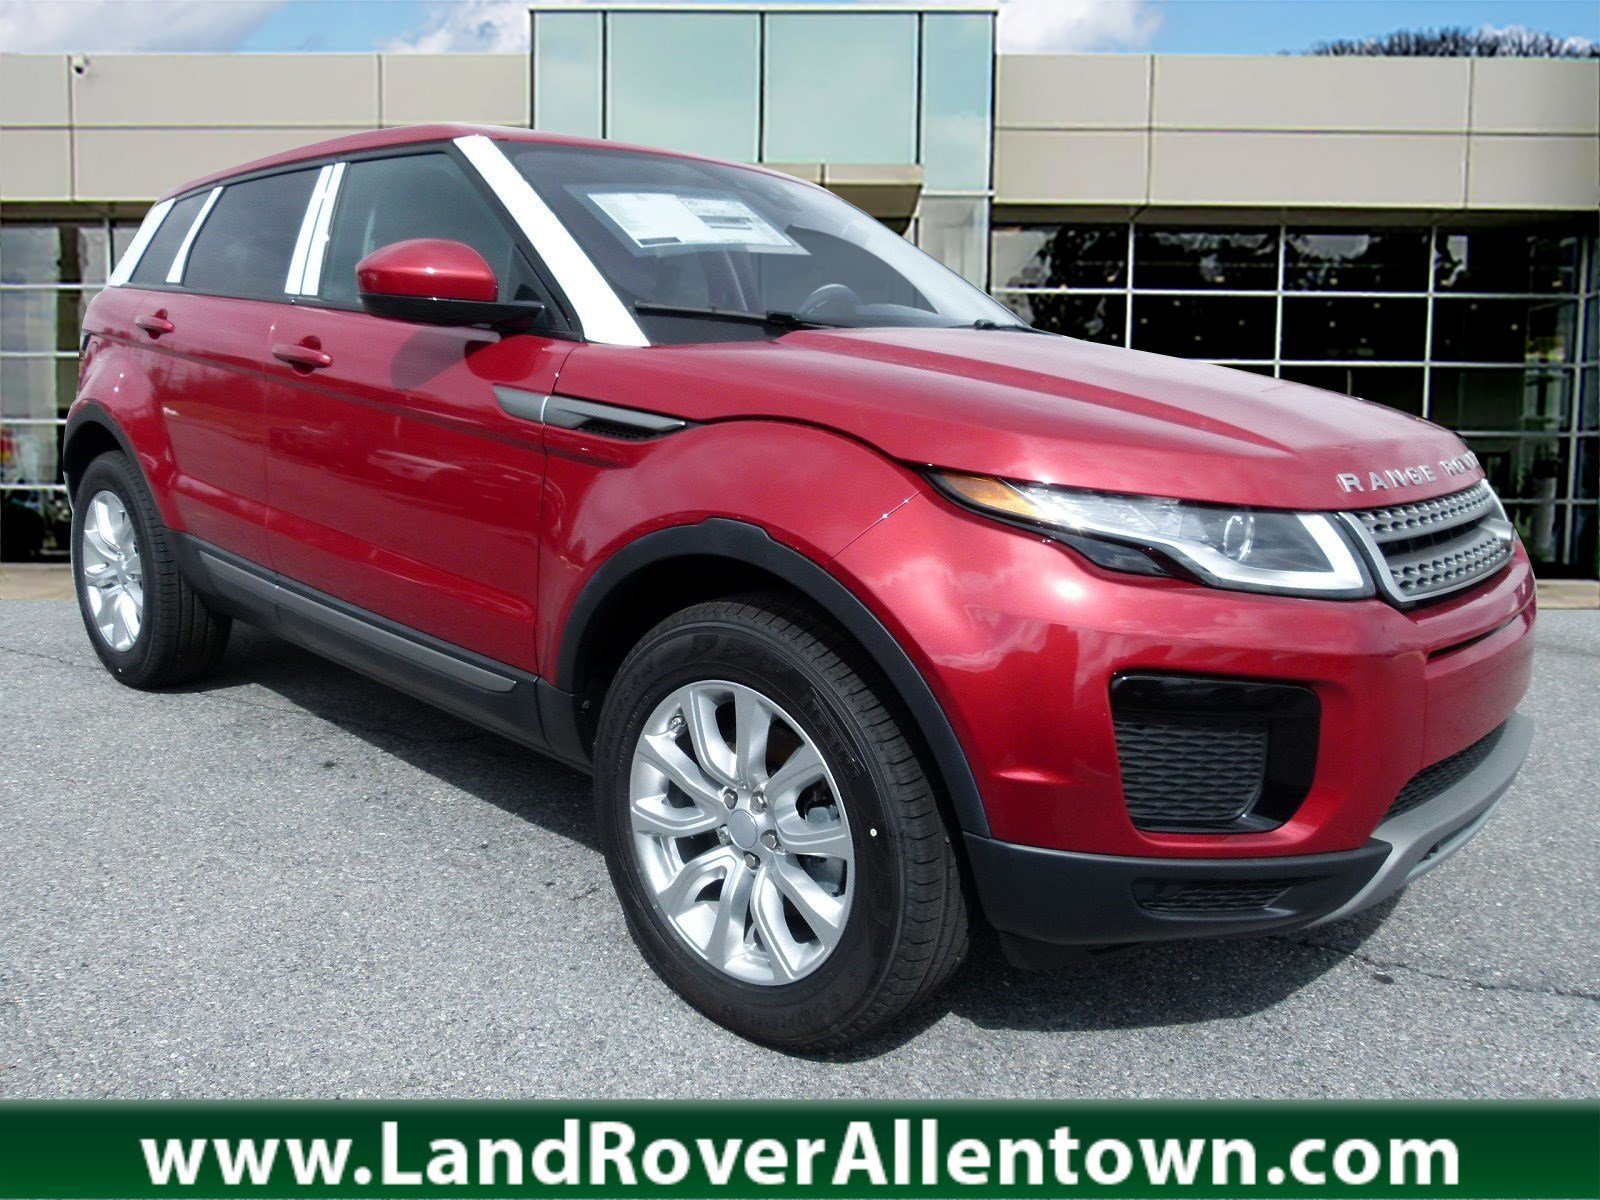 New 2018 Land Rover Range Rover Evoque SE 4 Door in Allentown L4286